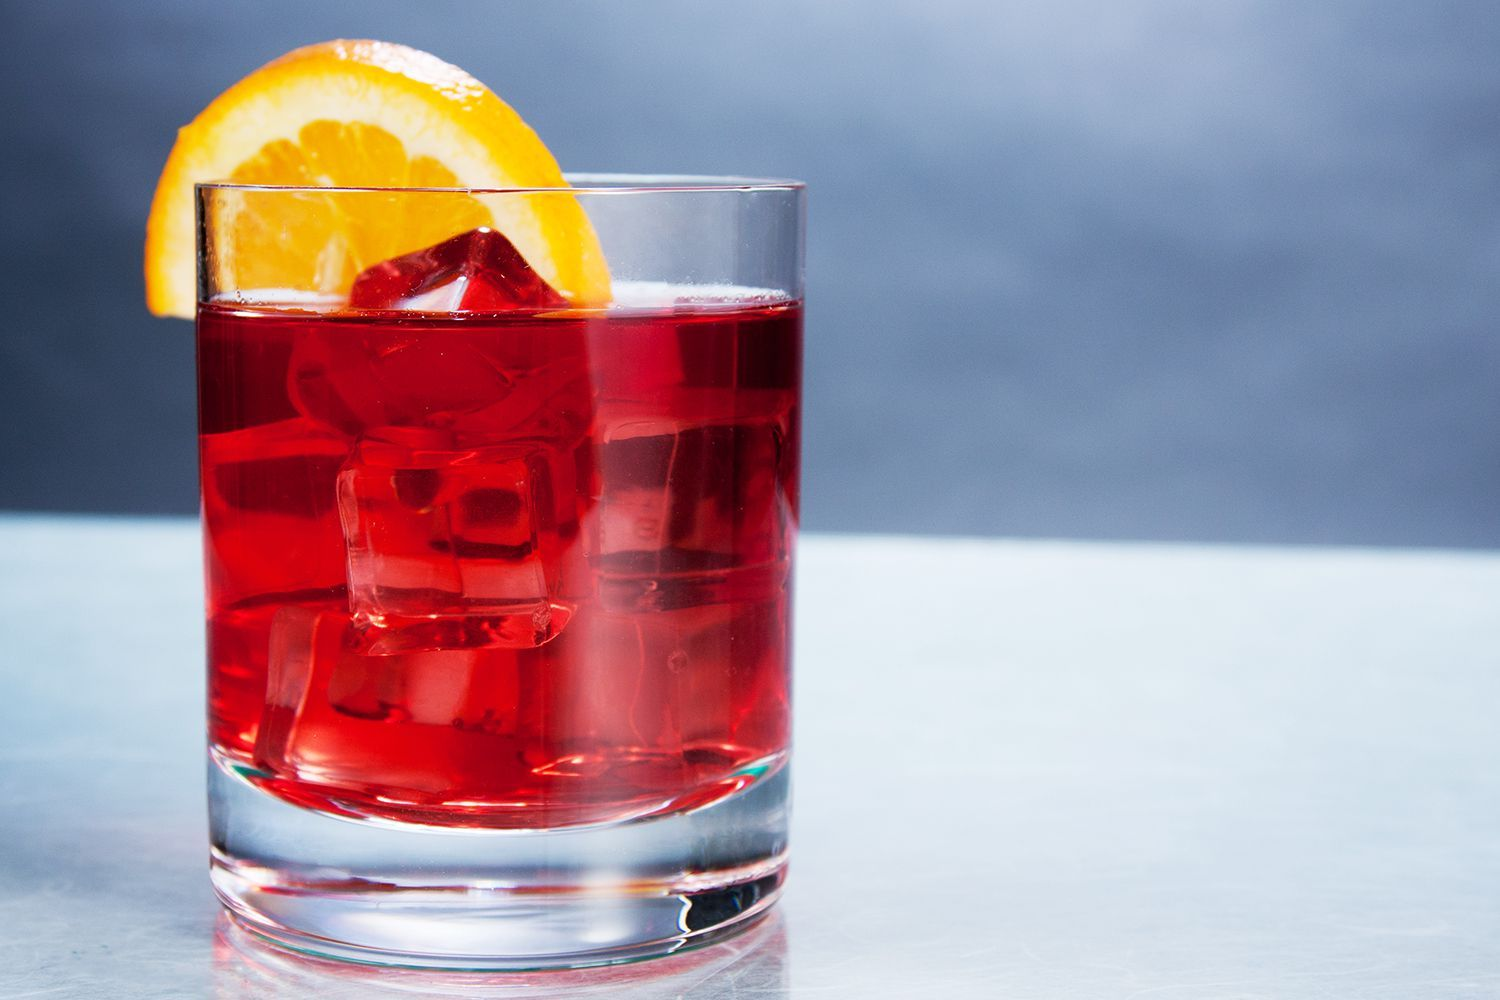 The Jolly Rancher Captures the Candy's Taste in a Cocktail